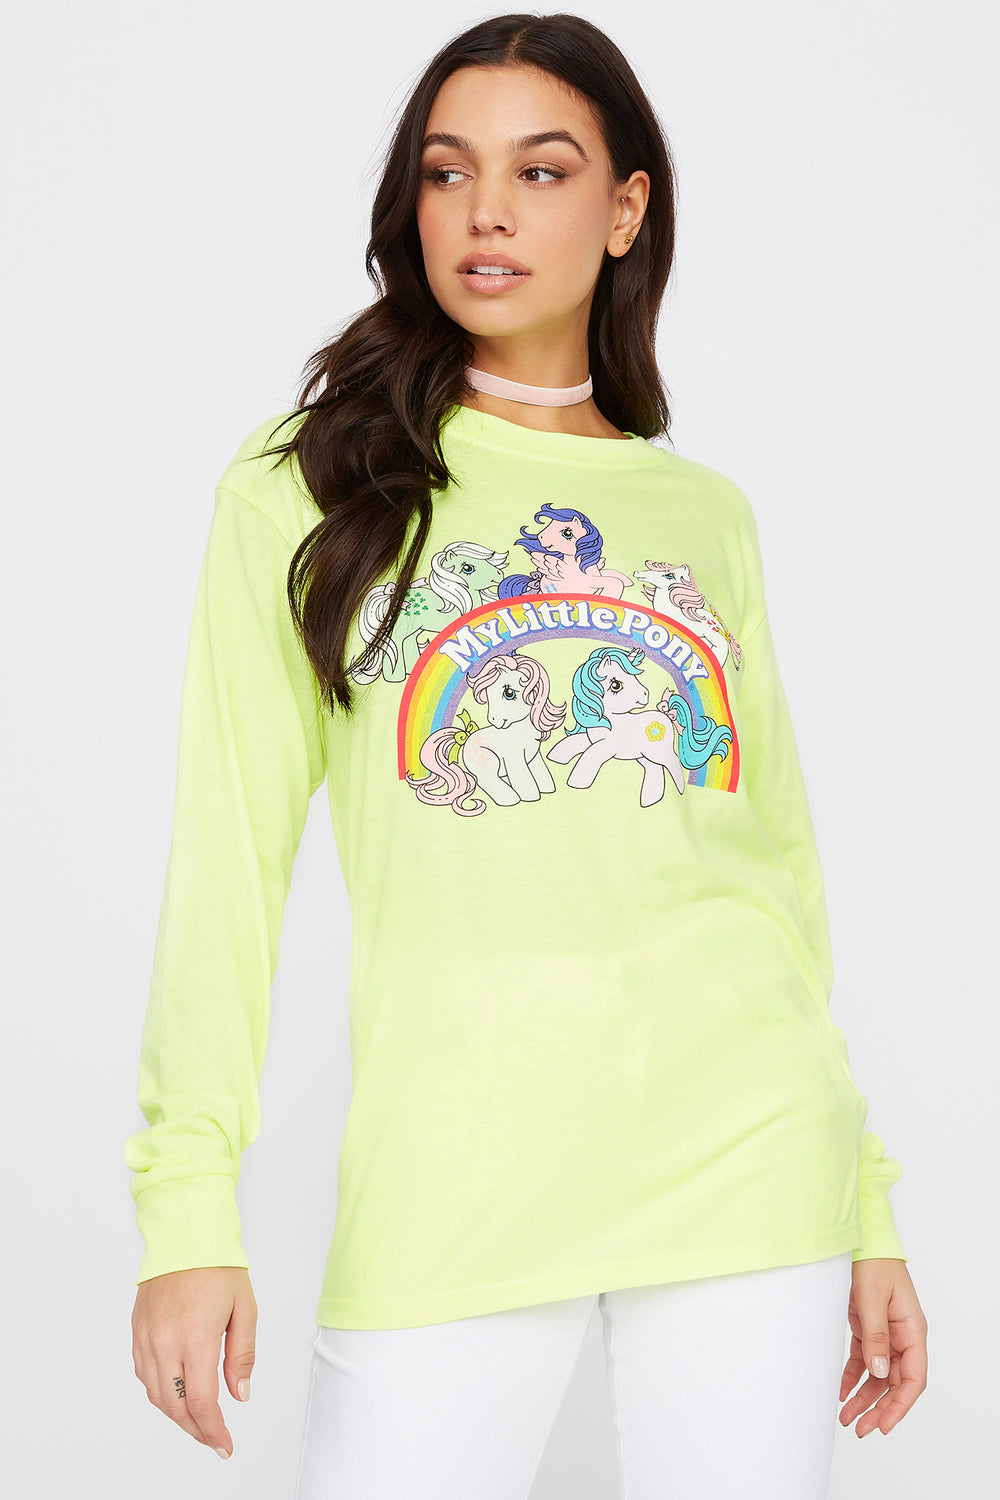 My Little Pony Graphic Long Sleeve Yellow